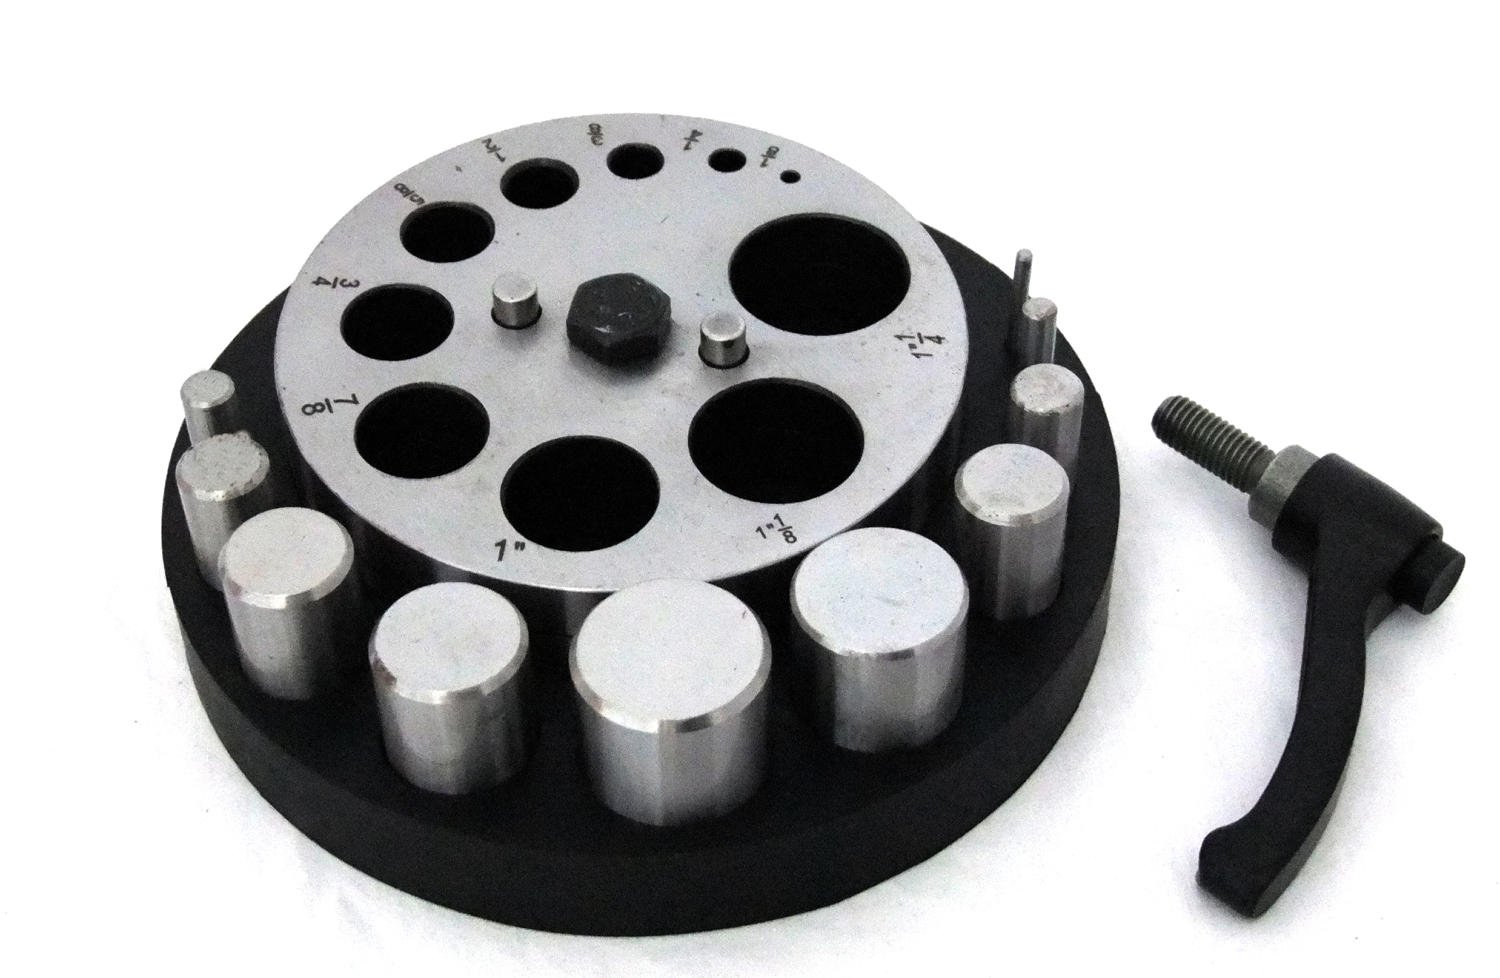 Very Large Disc Cutter 1/8'' To 1 1/4'' With 10 Punches In Rubber Base